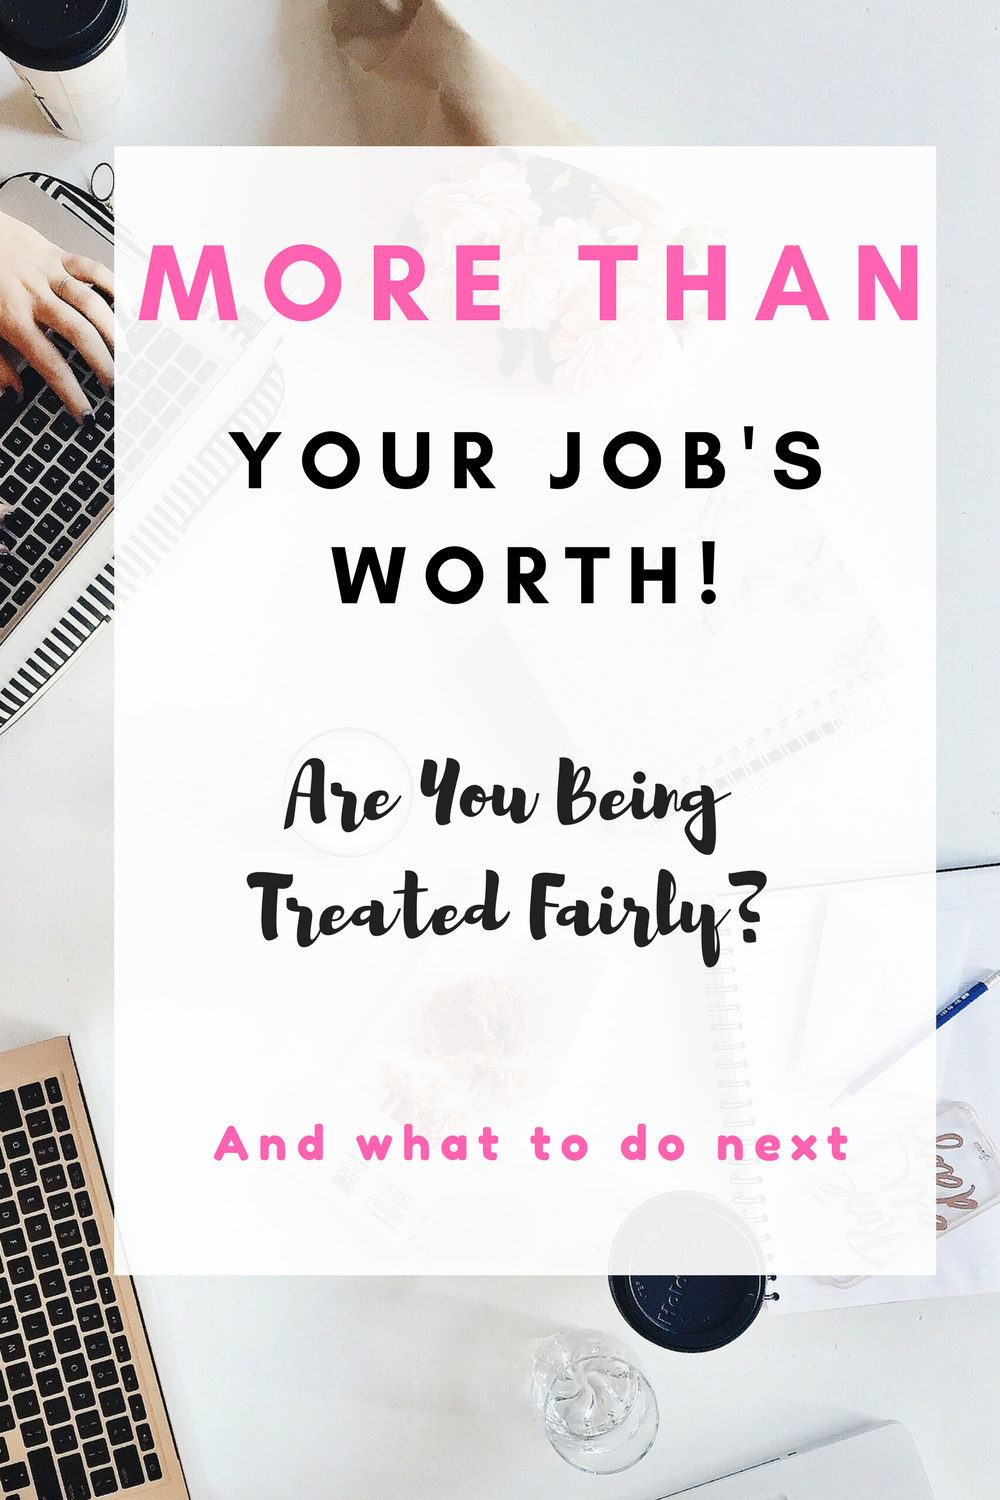 More Than Your Job's Worth! Are You Being Treated Fairly-